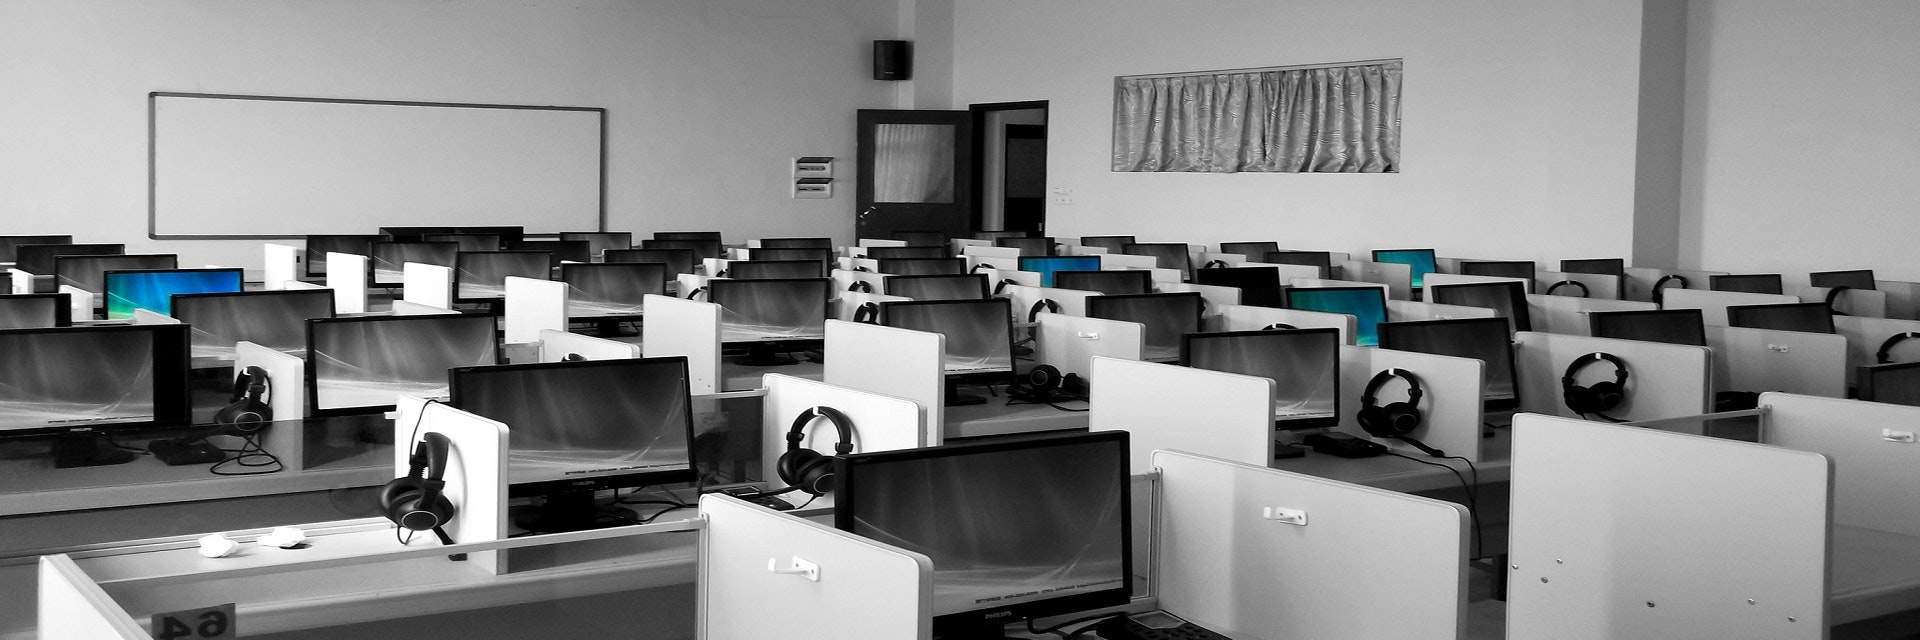 Image of an office with computers and desks - AnyPcFixed Ltd - Business I.T. Support & Maintenance, Data Networking, On-Site Support Callouts